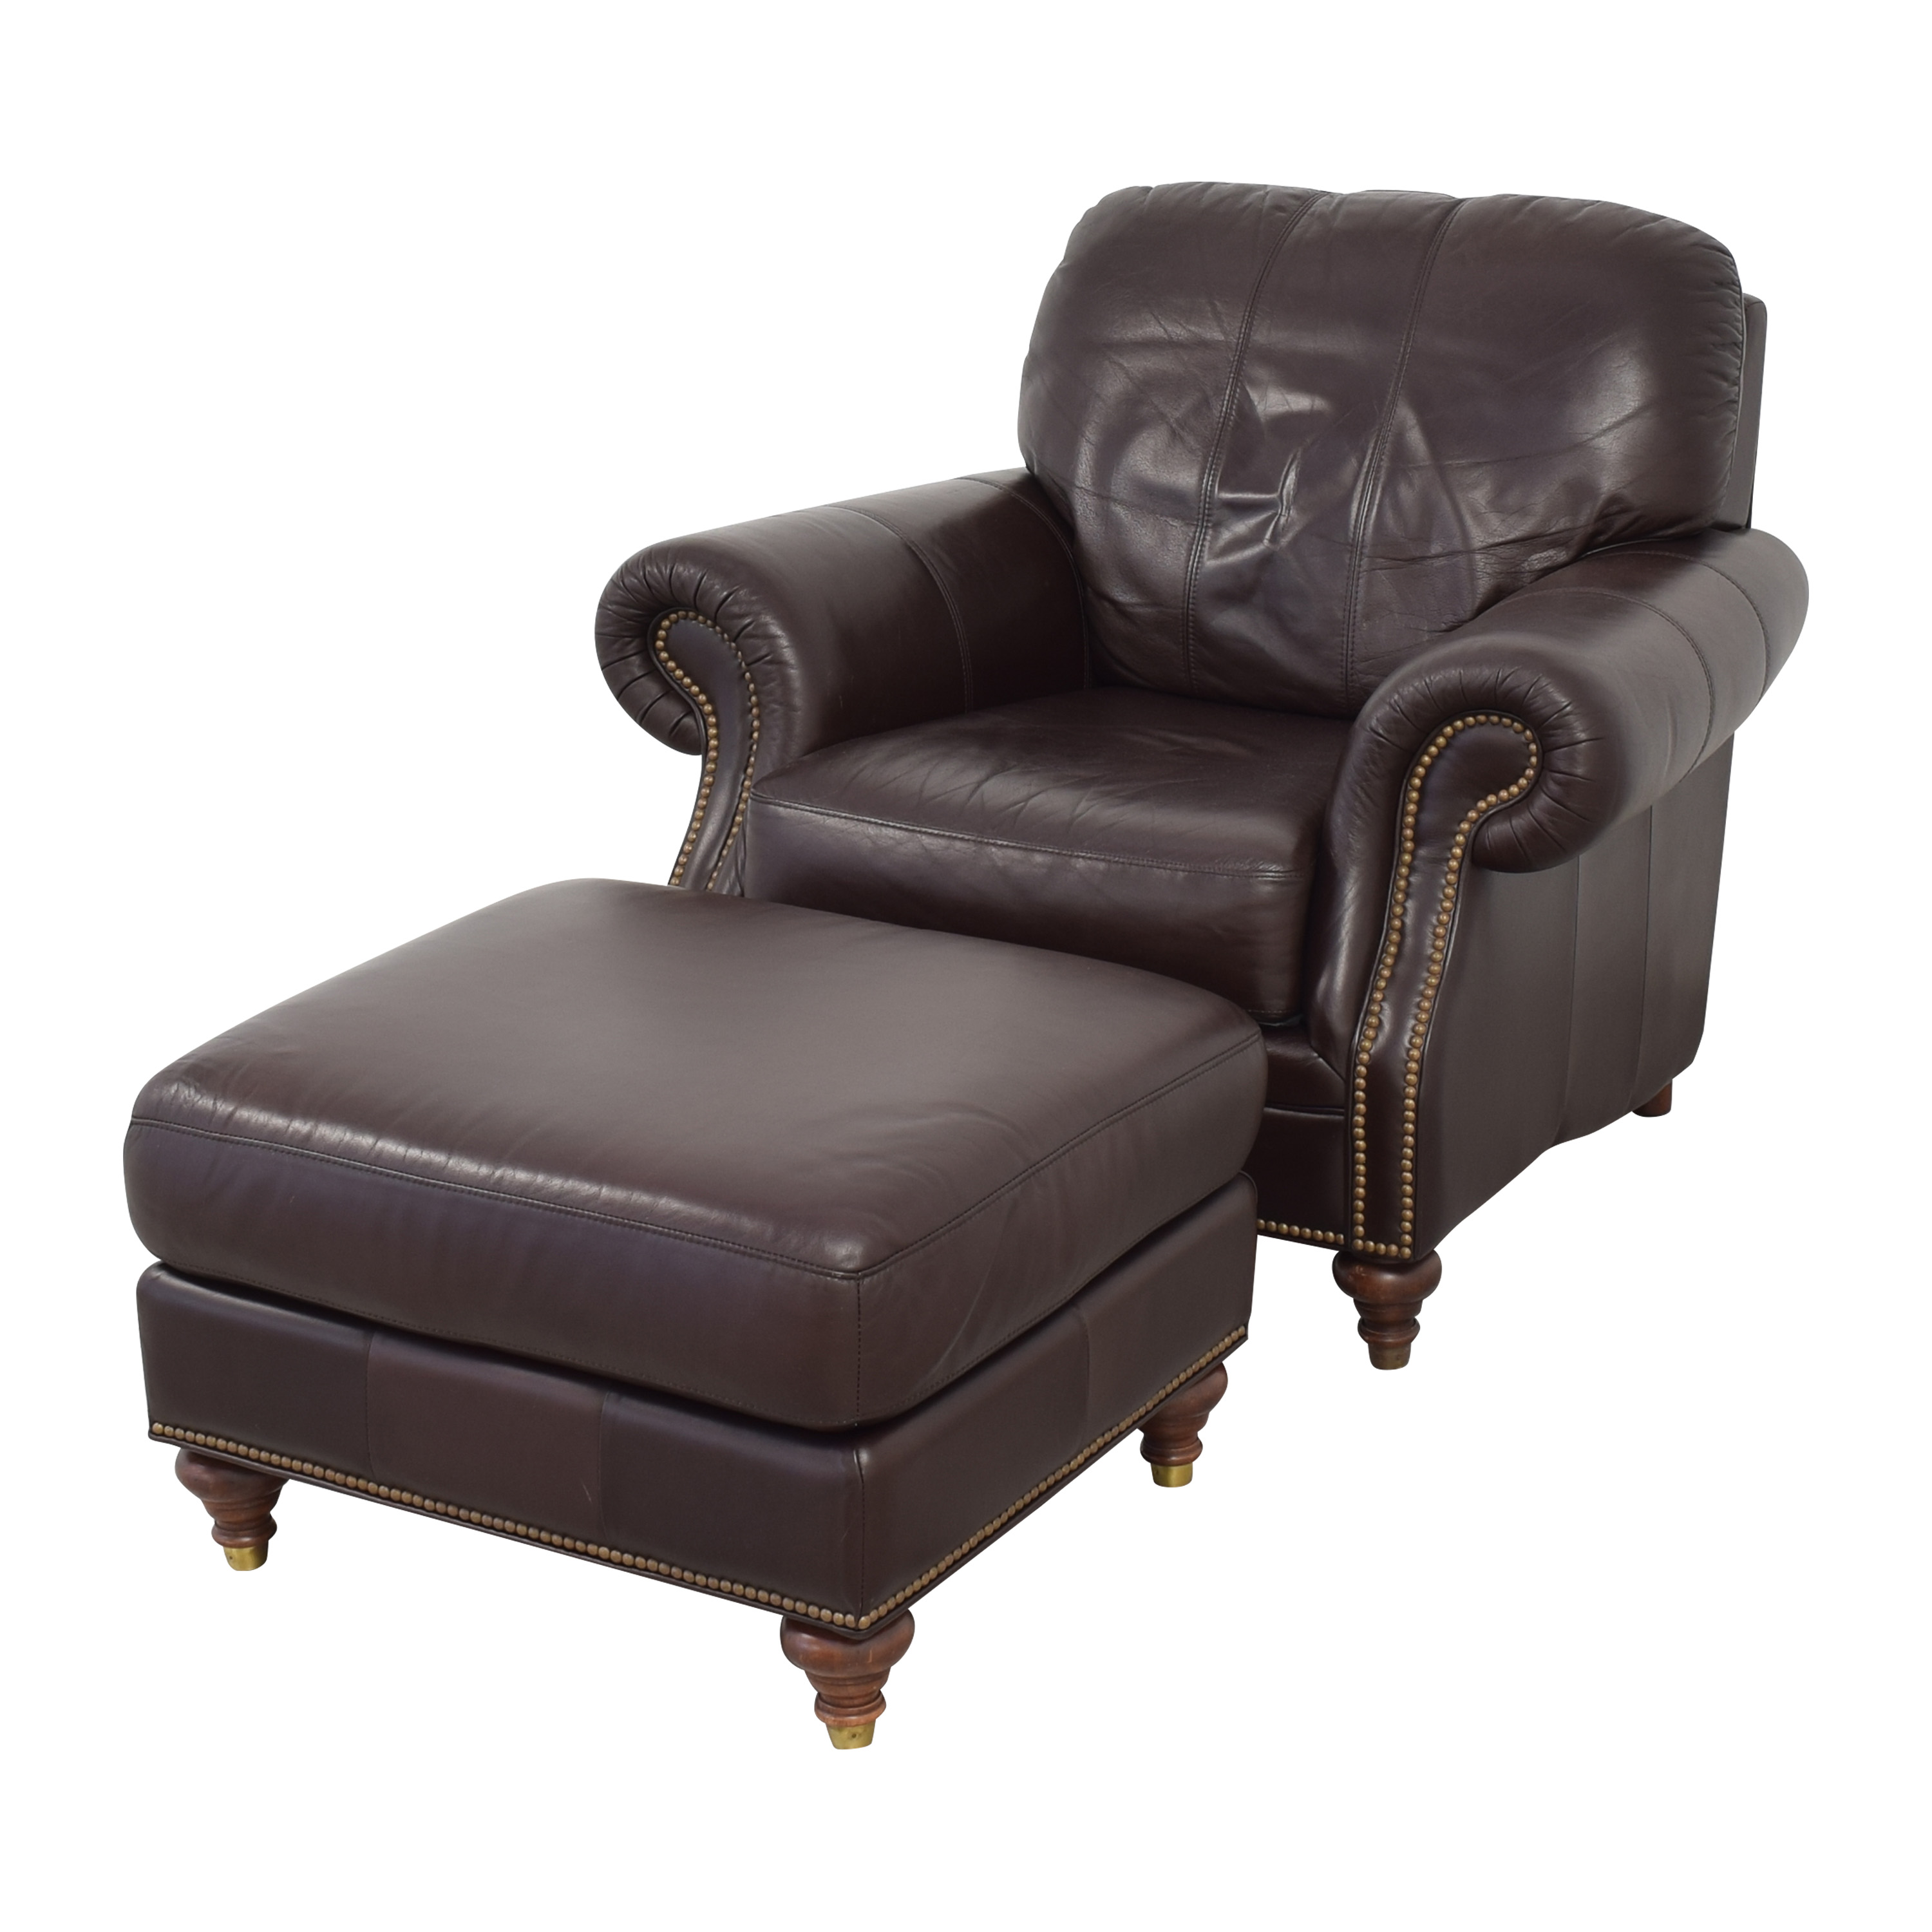 Ethan Allen Bennett Roll-Arm Leather Chair with ottoman / Chairs